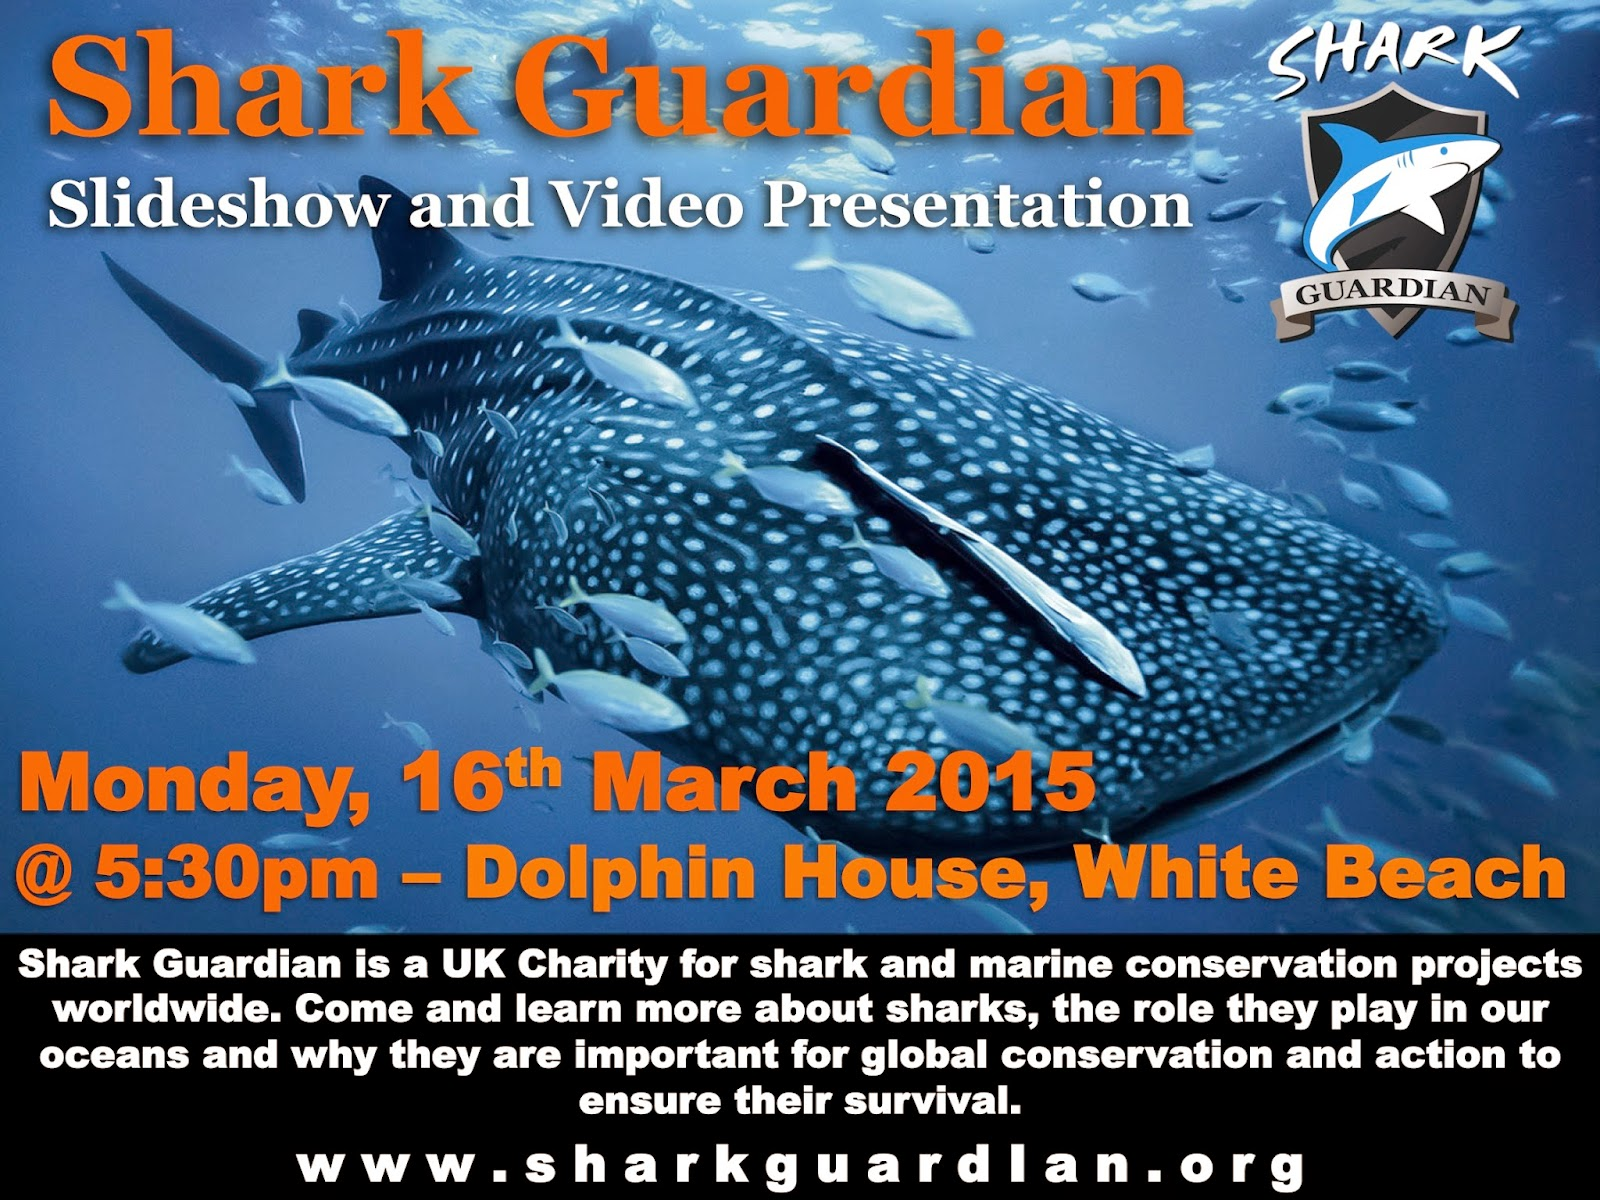 Shark Guardian presentation at Dolphin House, White Beach, Moalboal, Philippines